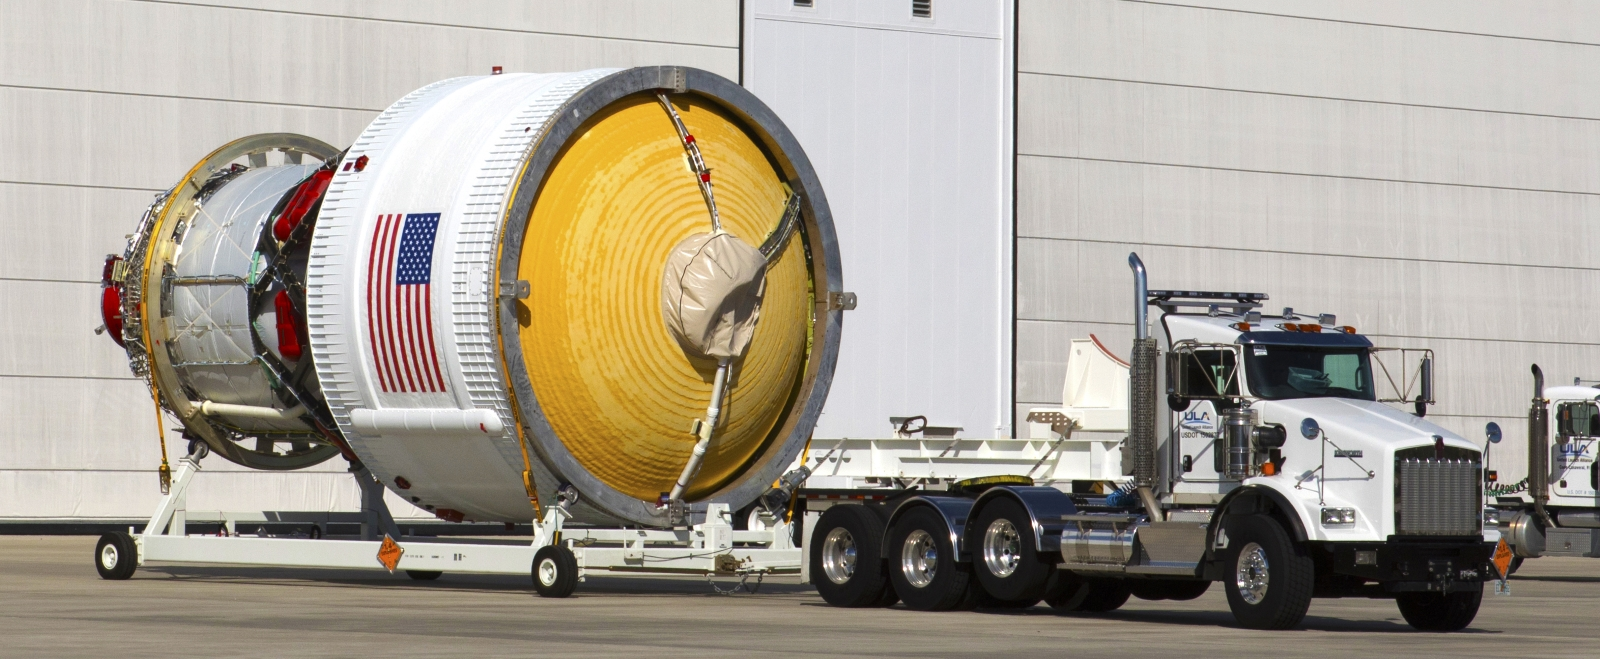 Interim Cryogenic Propulsion Stage (ICPS) for EM-1 Transport from HIF to DOC